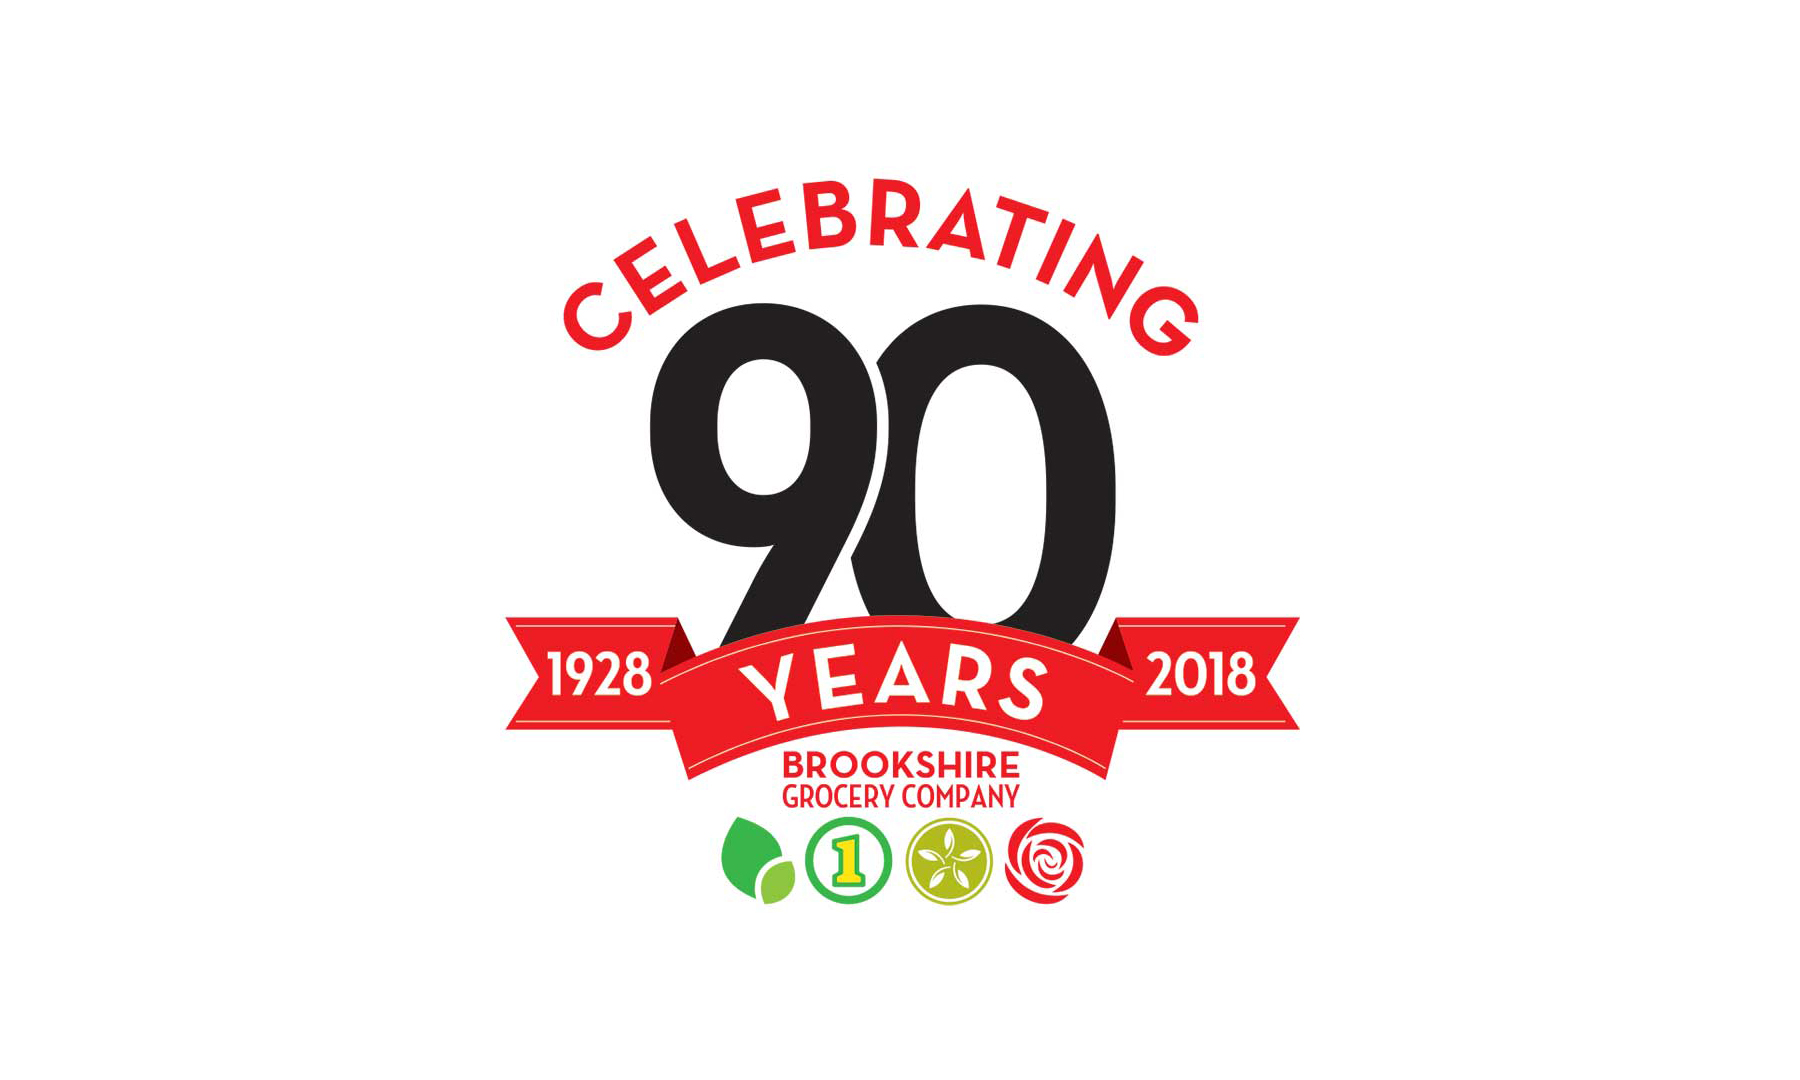 brookshire grocery co celebrates 90 years in business